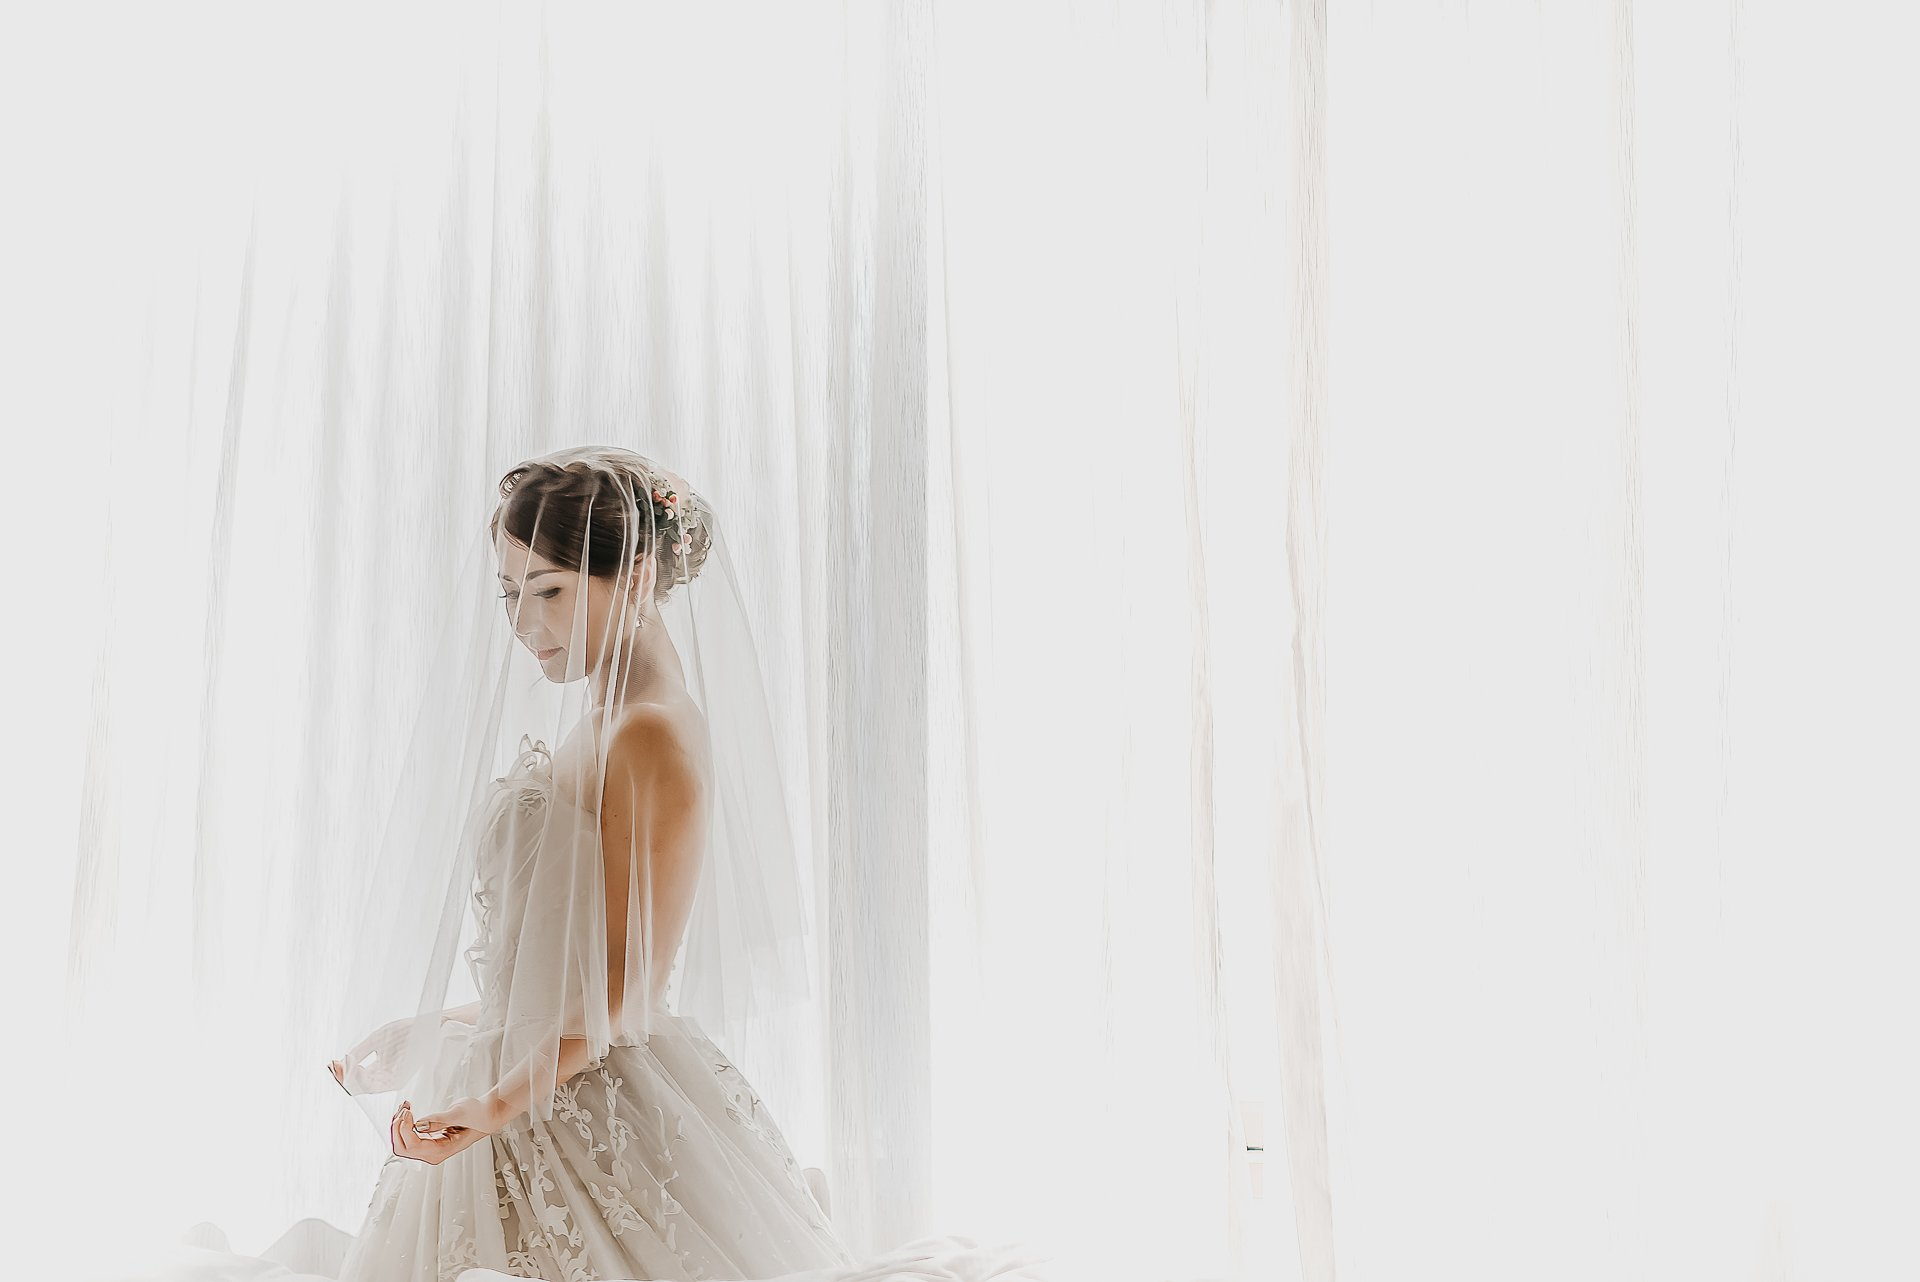 Good wedding photography tips shared by top wedding photographer singapore